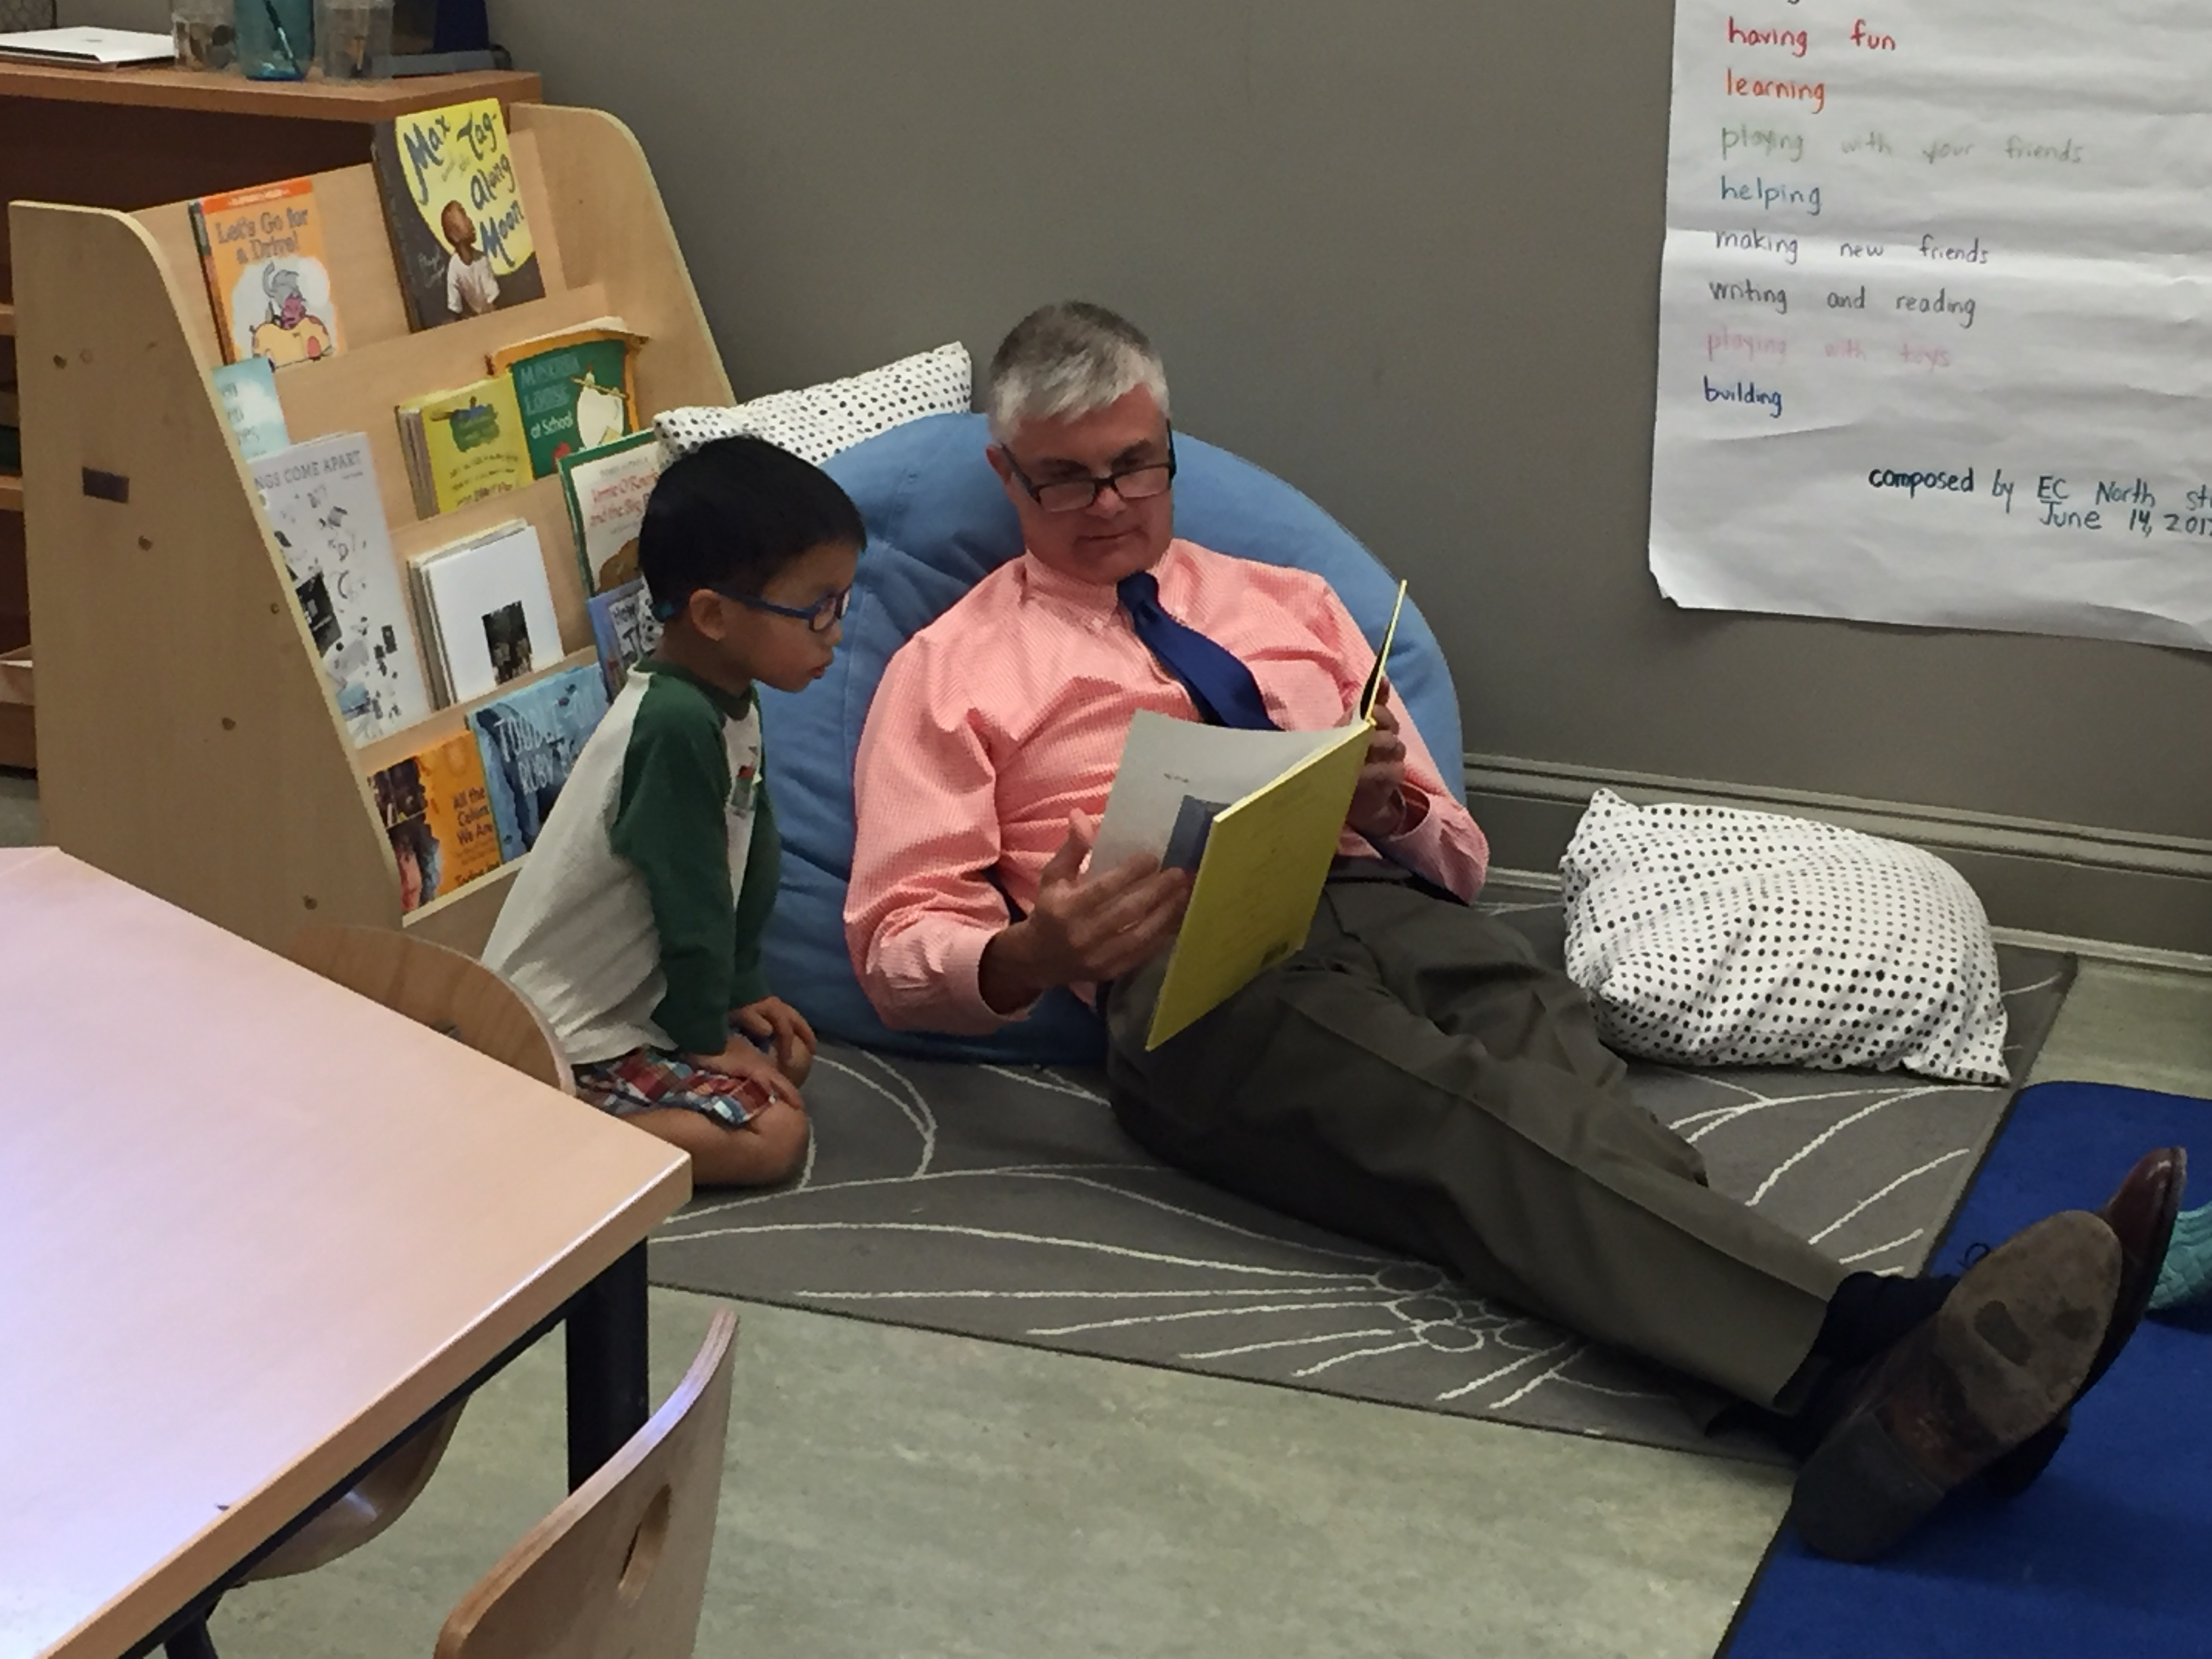 Head of School, Jason Gray, reading to an Early Childhood student on a beanbag chair.